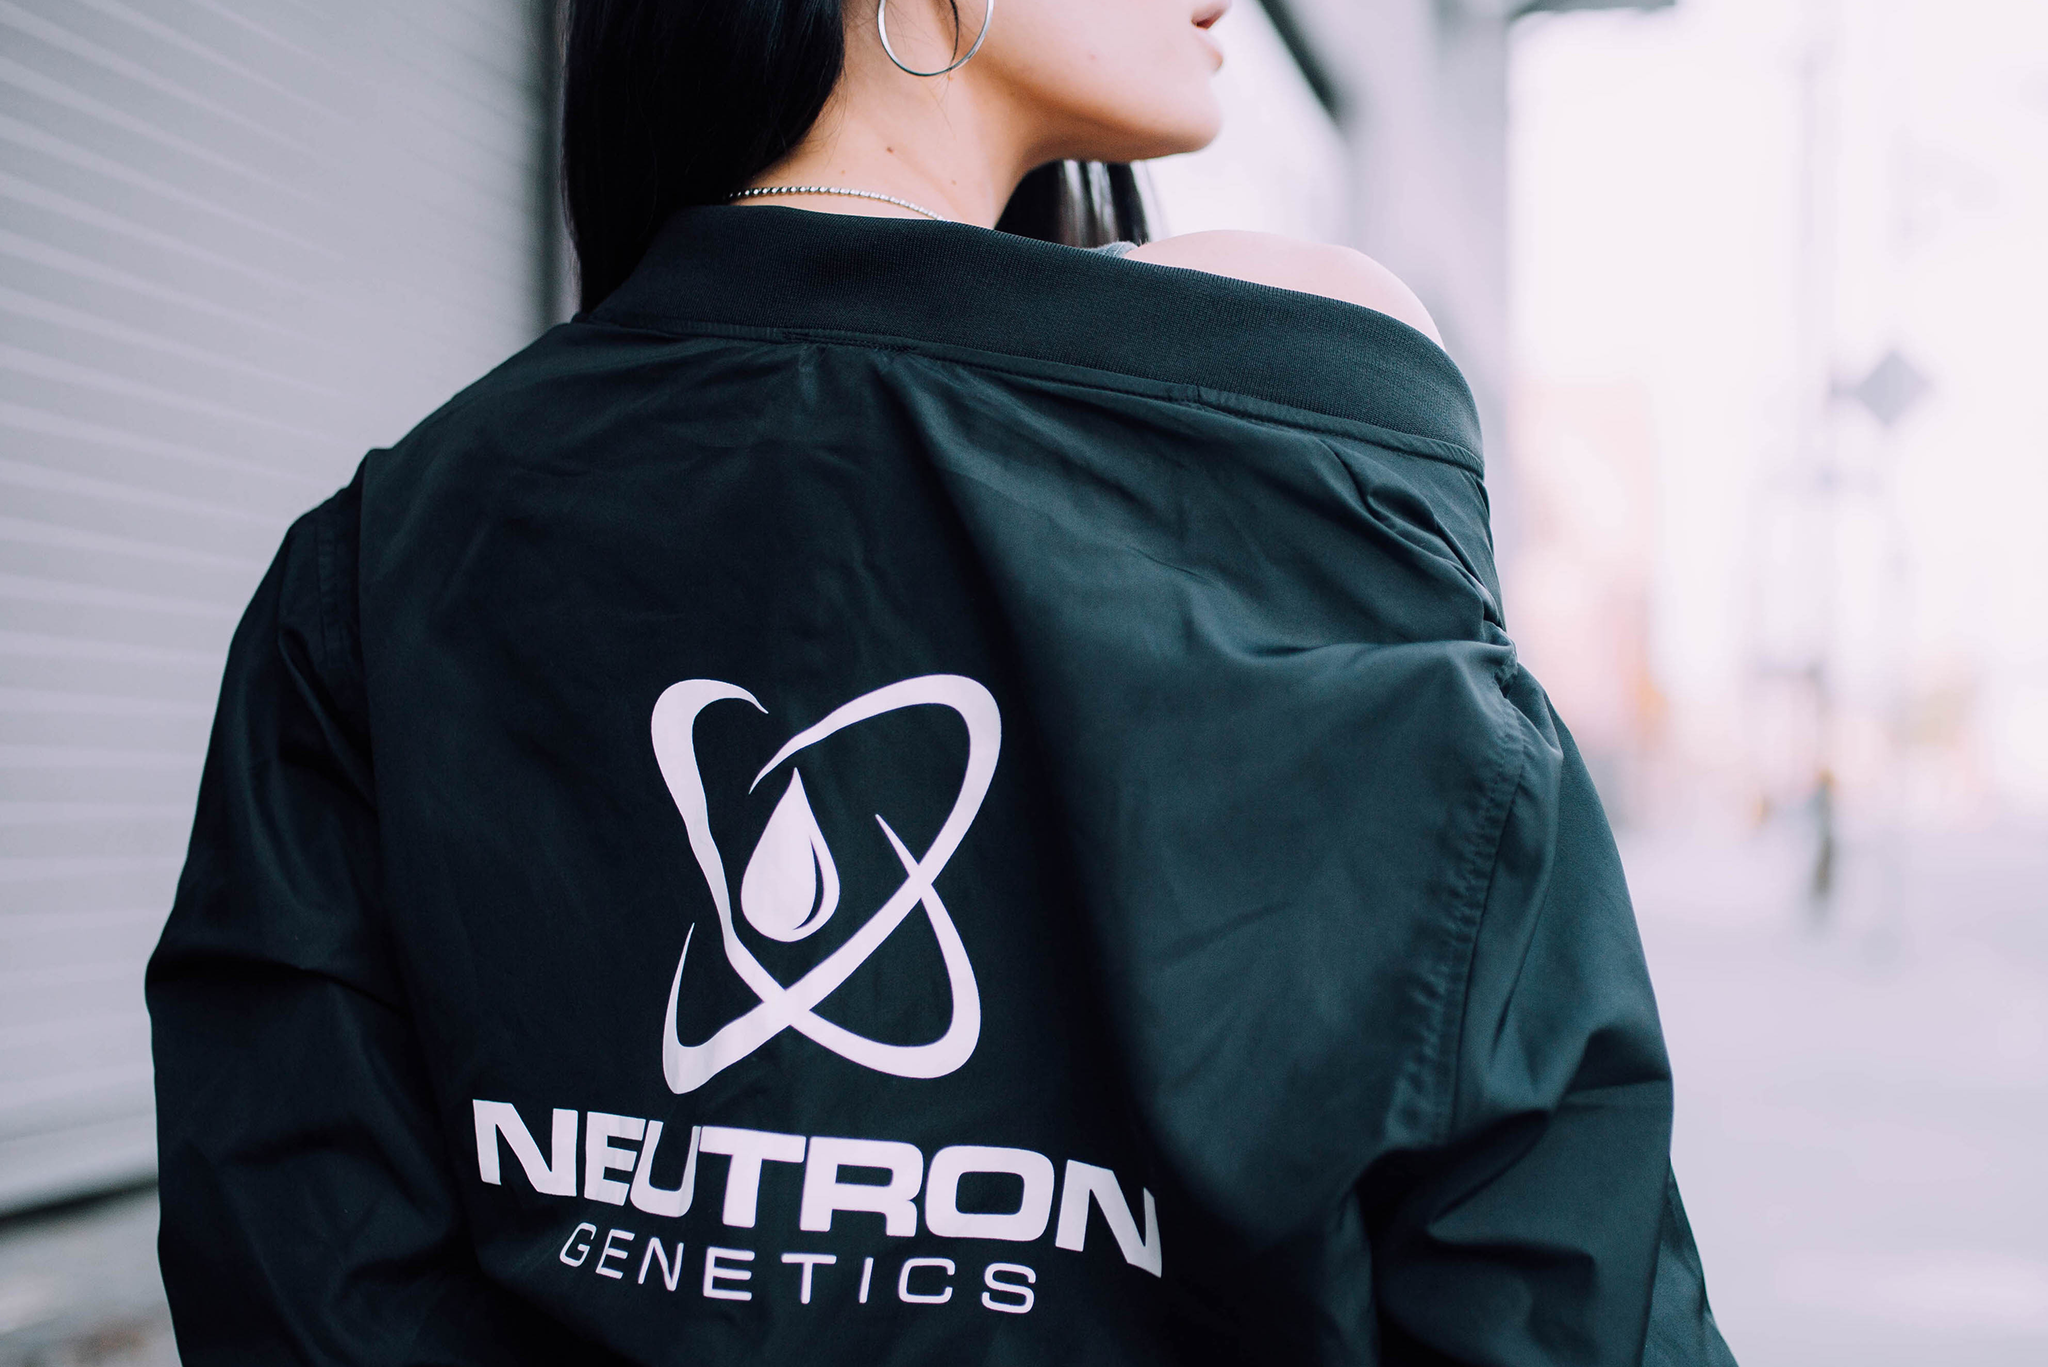 neutron genetics bomber jacket